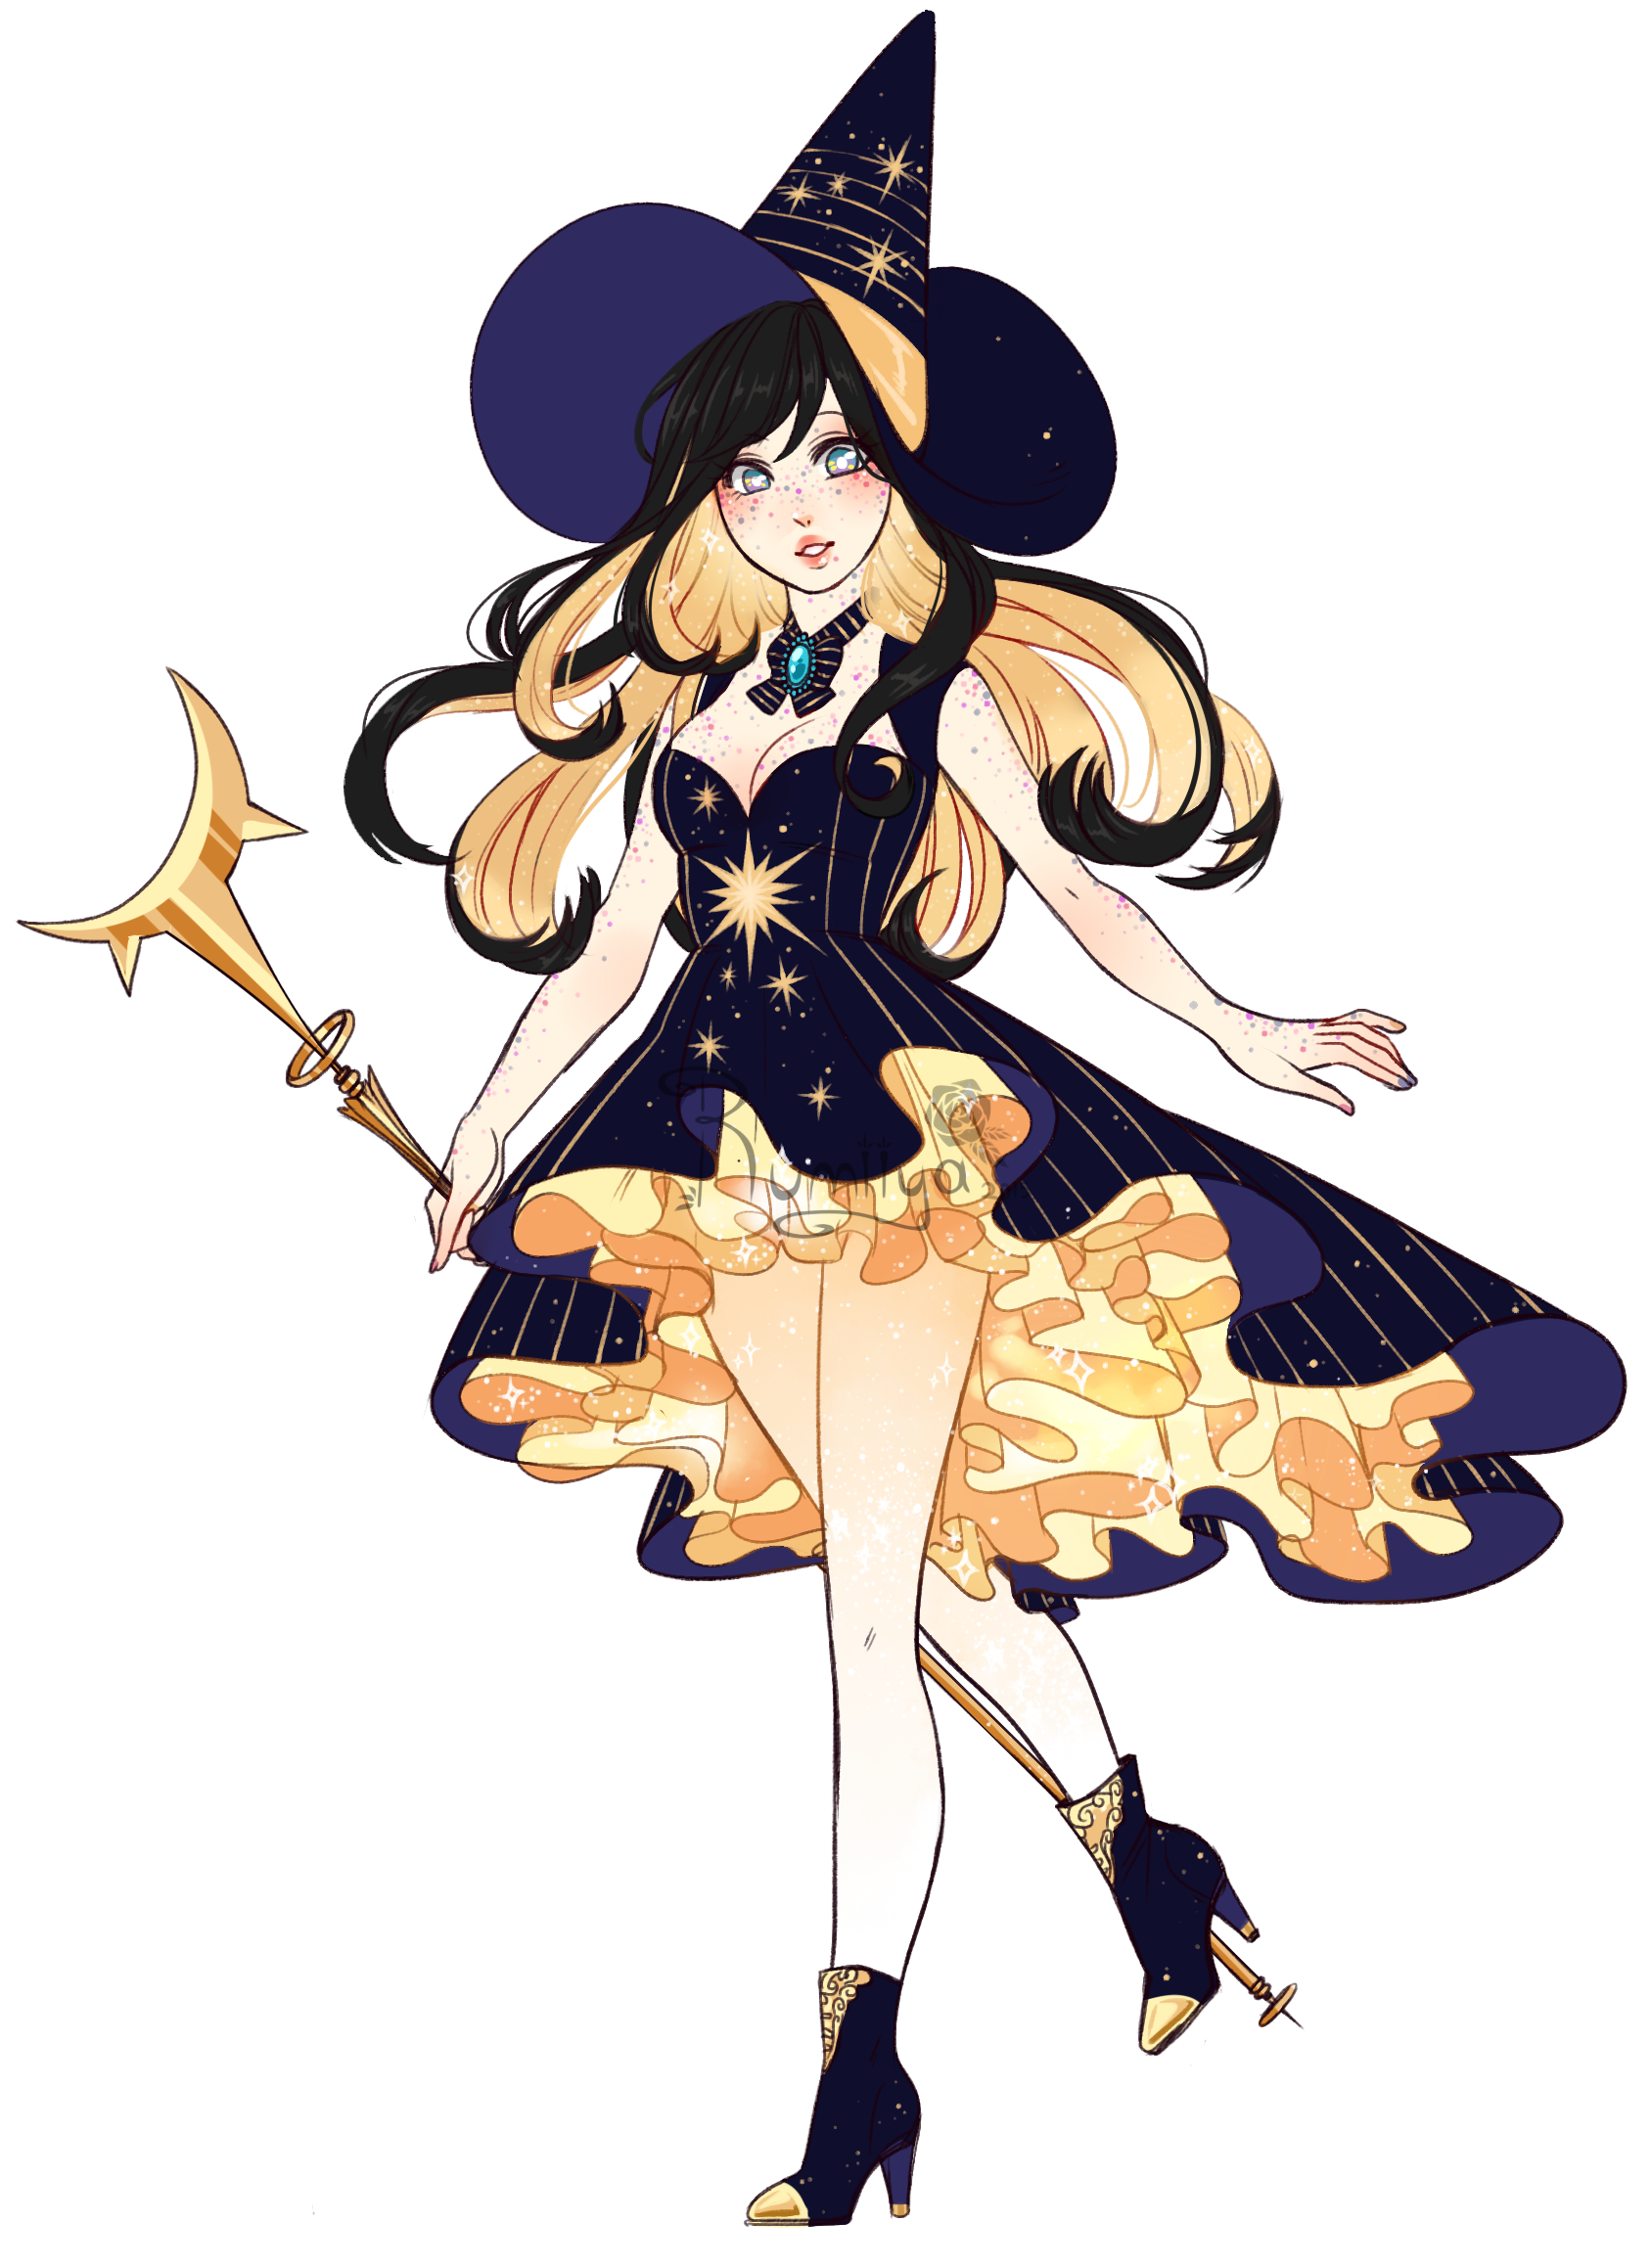 Albirea on Toyhouse | Witch art | Witch art, Witch drawing, Anime art